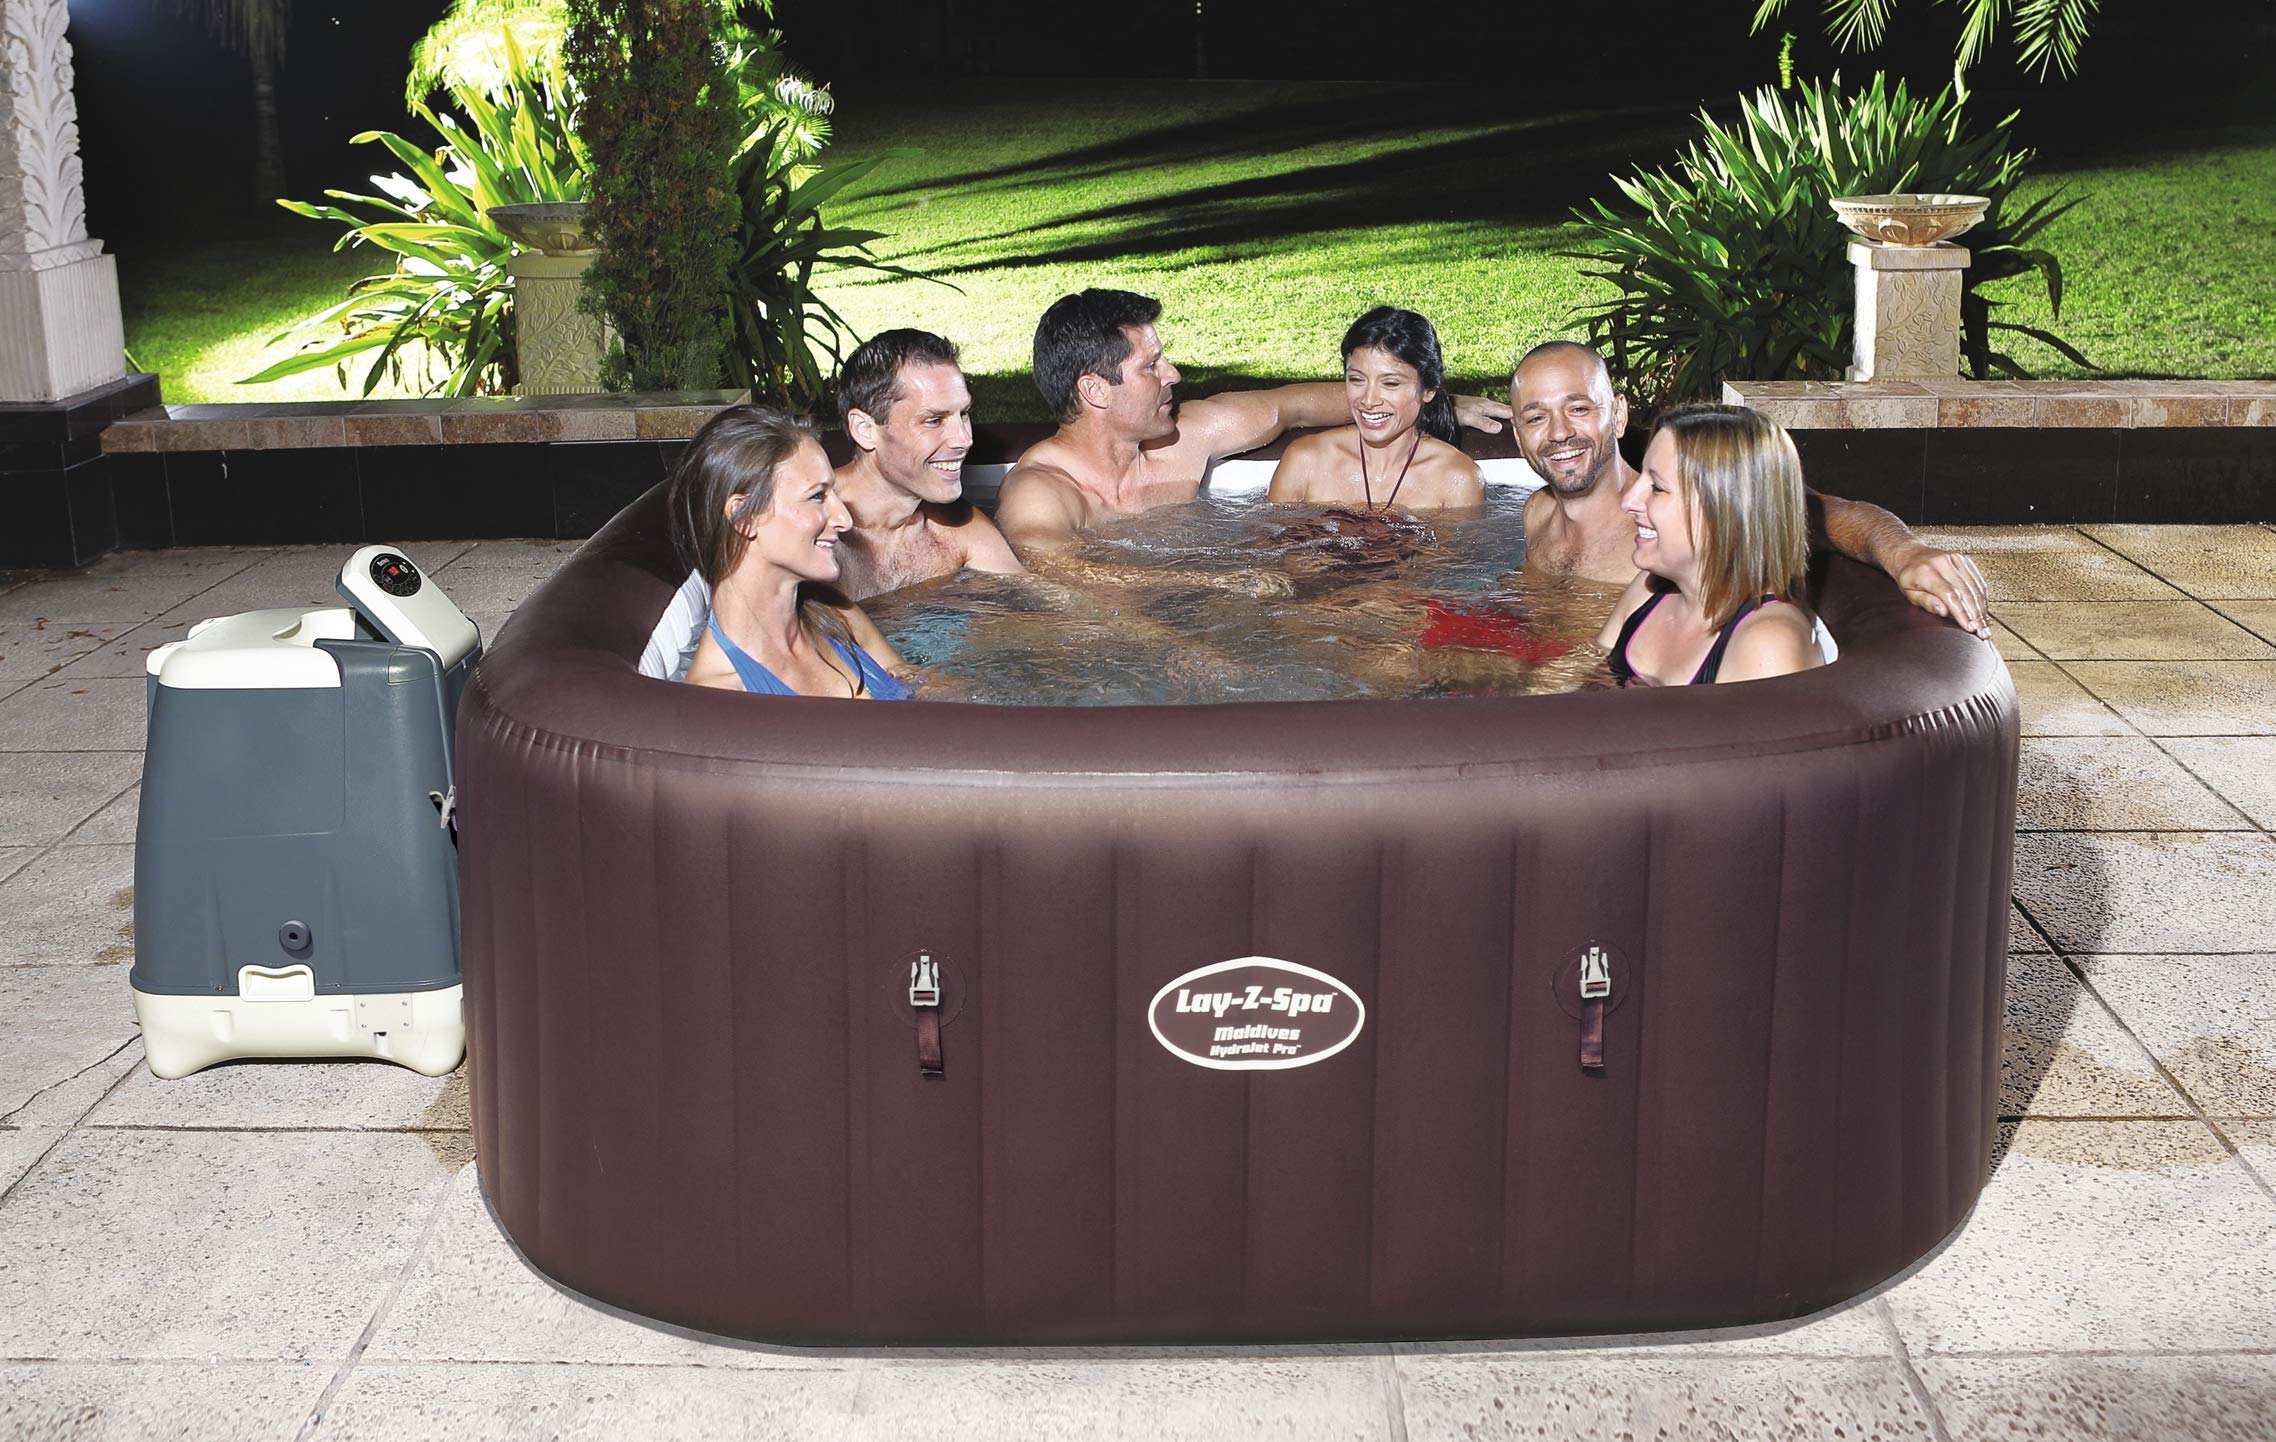 BESTWAY 54173 - Spa Hinchable Lay-Z-Spa Maldives Para 5-7 personas Cuadrado: Amazon.es: Jardín